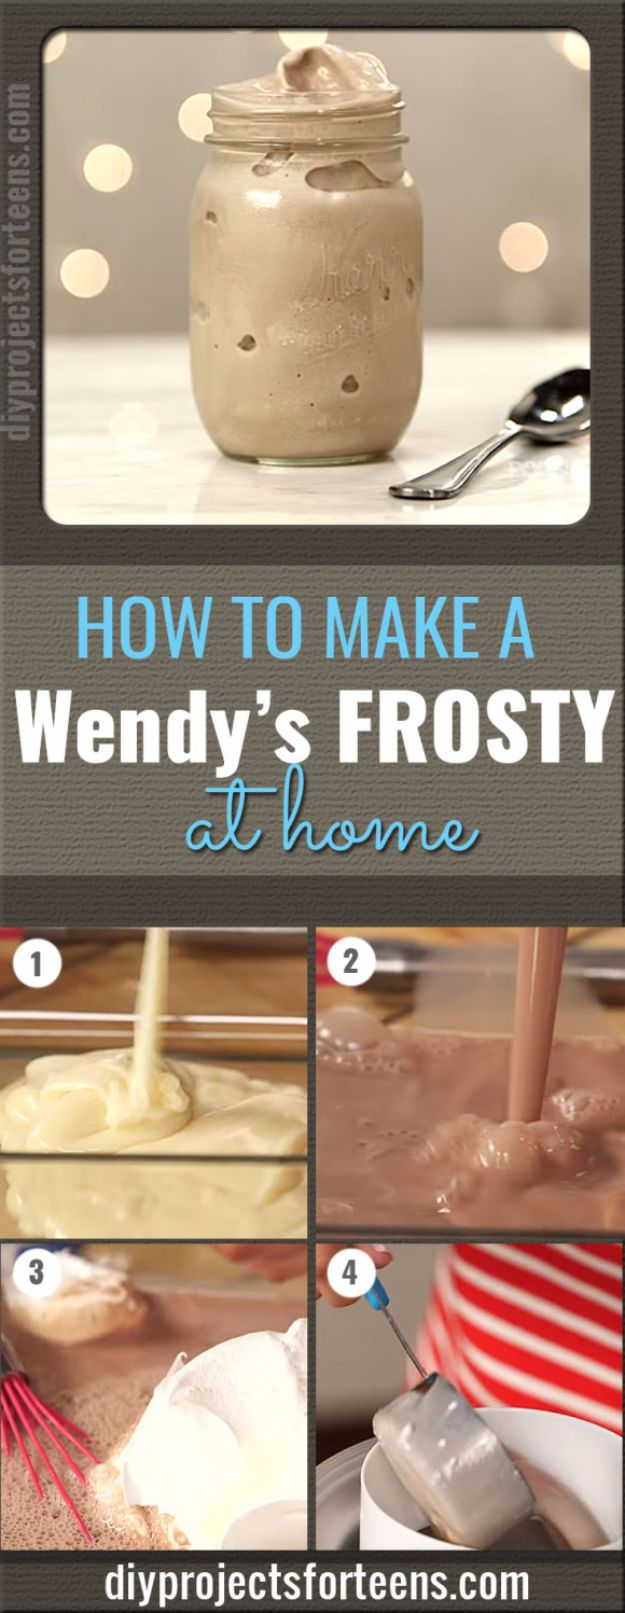 Easy Desserts for Teens to Make at Home - Wendy's Frosty At Home - Cool Dessert Recipes That Are Simple and Quick Enough For Teens, Teenagers and Older Kids - Best Dorm Snacks and Ideas - Microwave, No Bake, 3 Ingredient, Chocolate, Mug Cakes and More http://diyjoy.com/desserts-teens-to-make-at-home